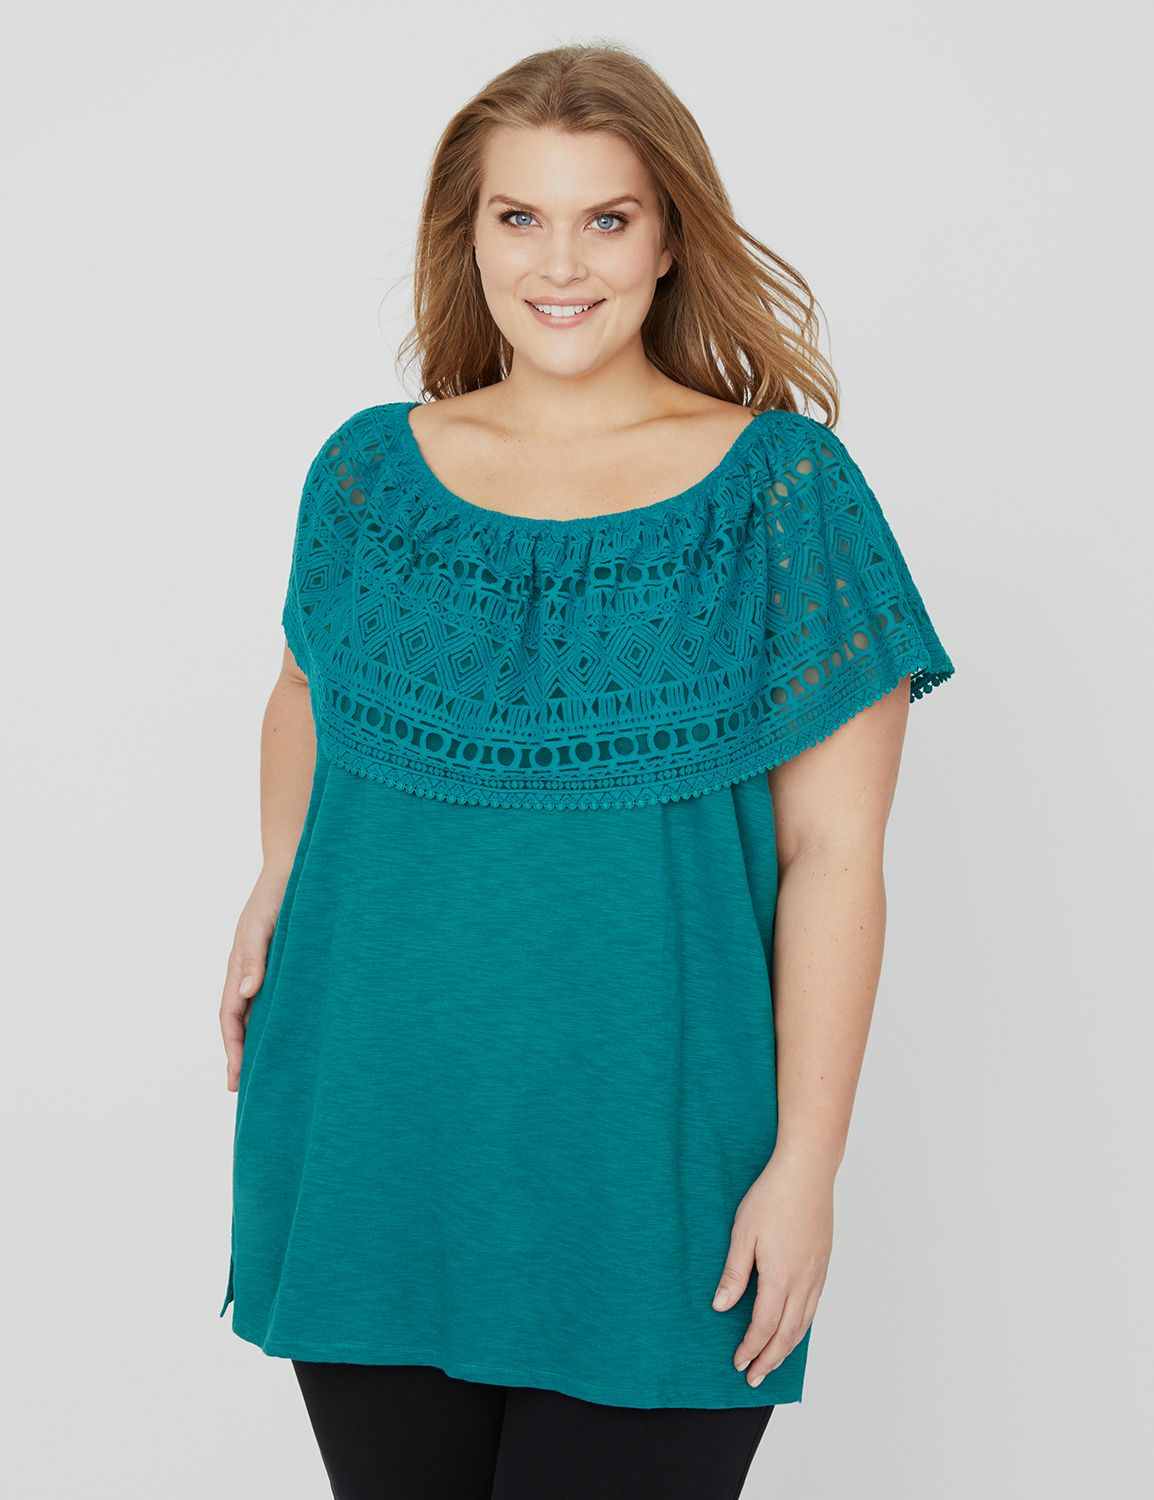 Shaded Cove Off-the-Shoulder Top 1088202 BURNOUT FLOUNCE OFF SHOULDE MP-300101838